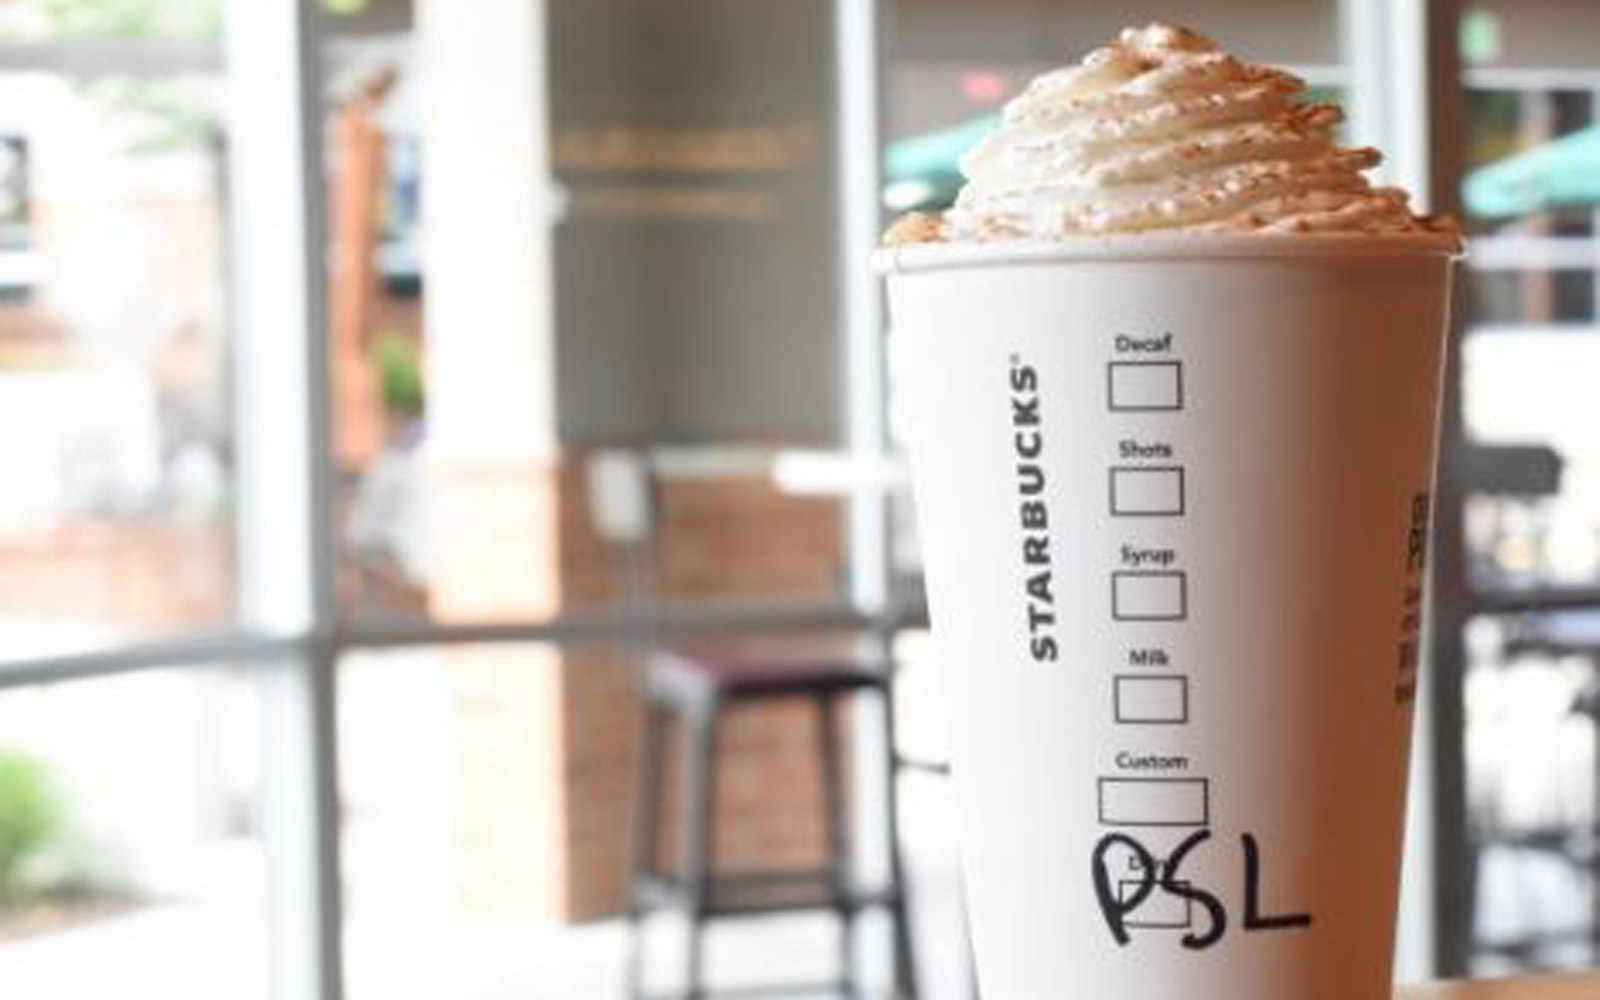 Pumpkin Spice Latte Fans Are Furious Over This Starbucks Fail